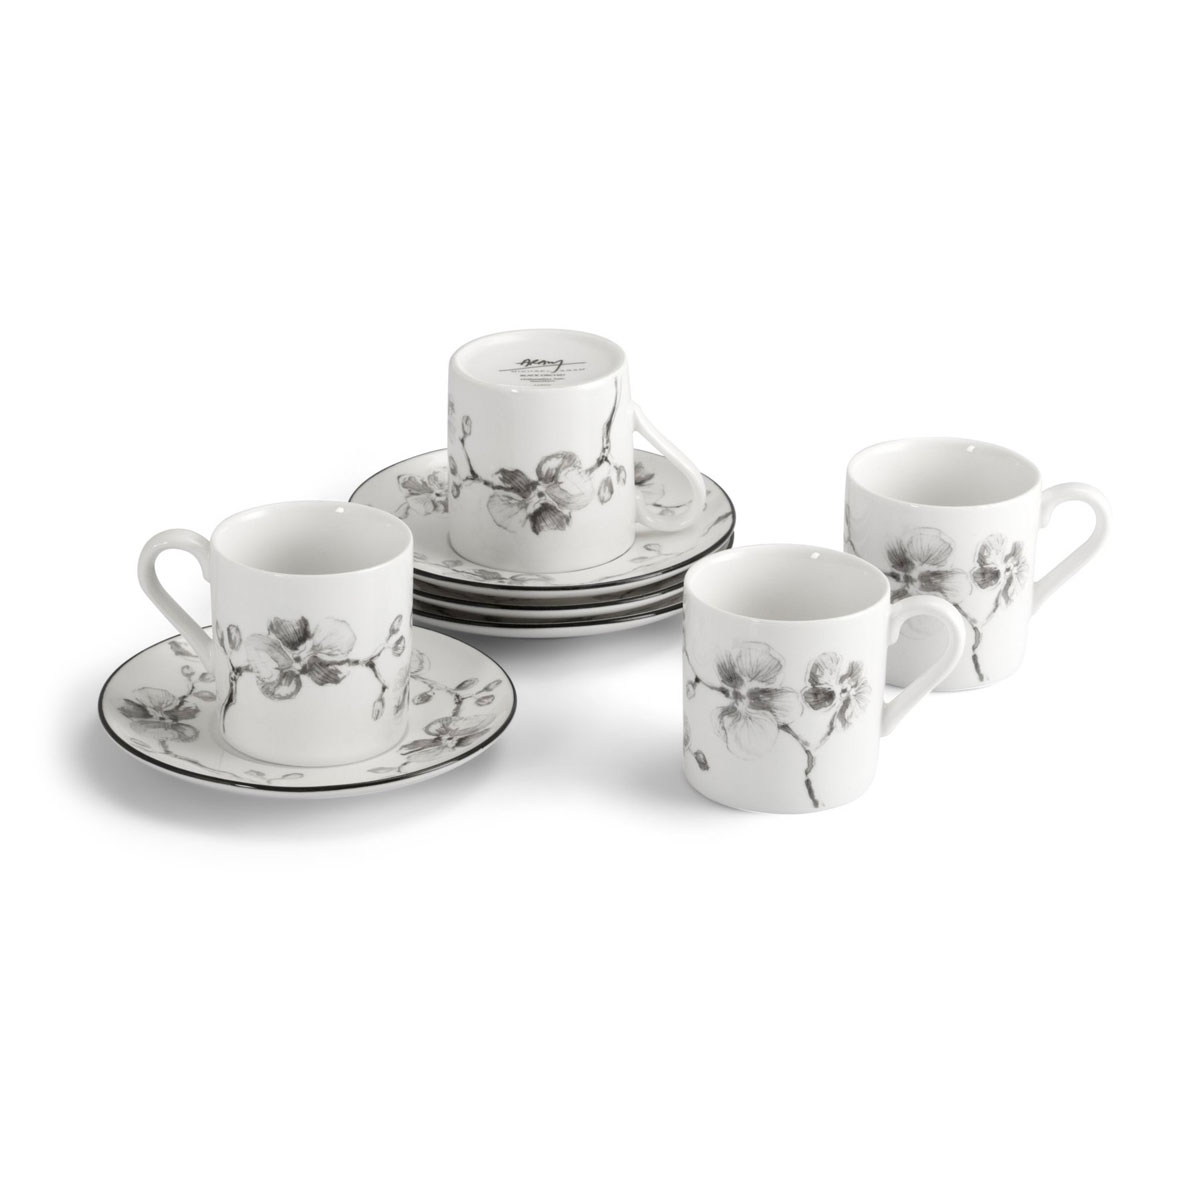 Michael Aram Black Orchid Demitasse Set, Set of Four